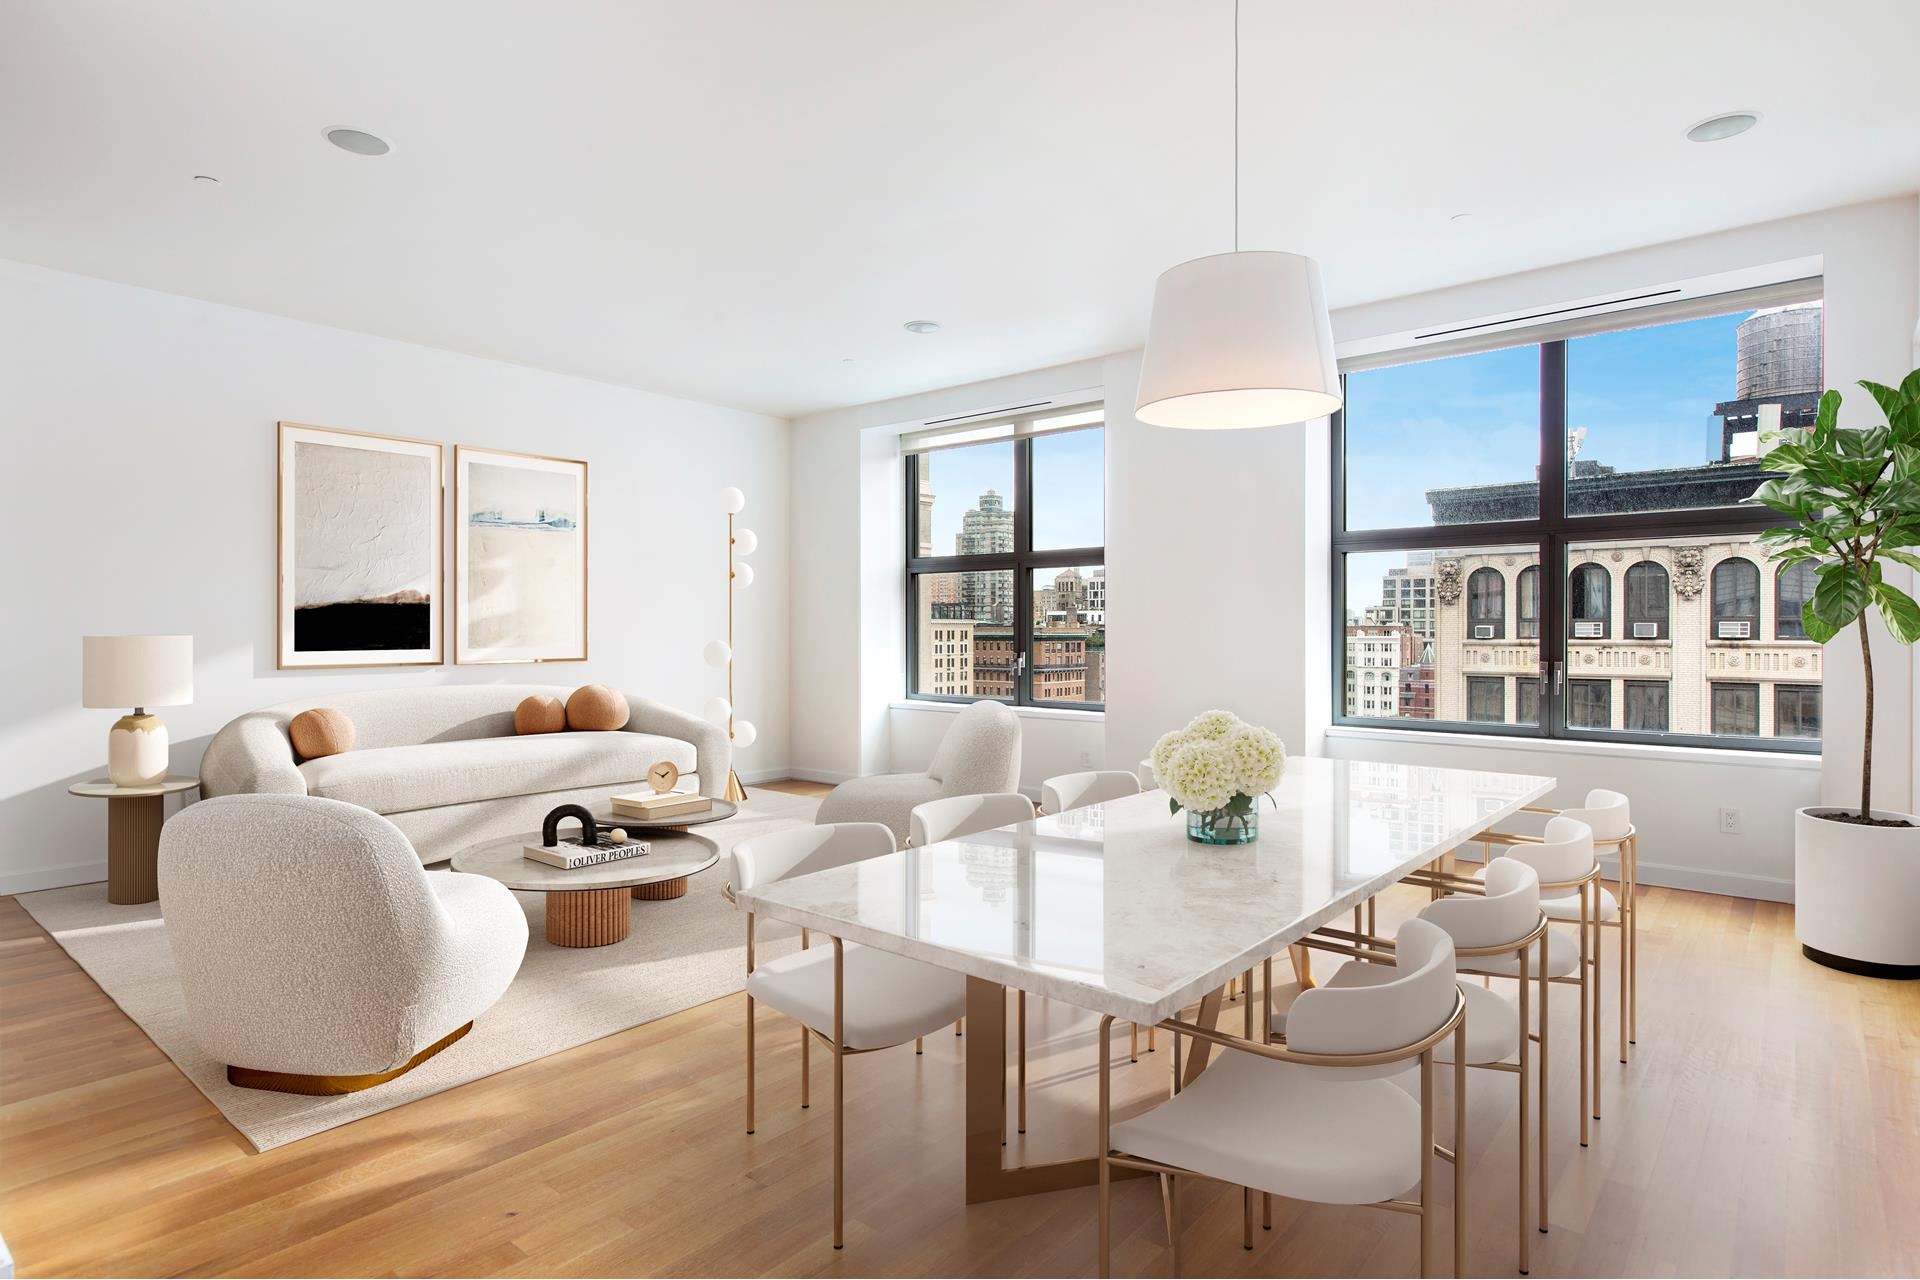 Residence 14B at 240 Park Avenue South is a beautifully appointed 2,139 square foot 3-bedroom 3.5-bathroom designed by Annabelle Selldorf.    Offering beautiful views of gramercy Park from extra-large, double-hung windows, and 10' ceilings, the spacious living room is the perfect place to relax or entertain and the loft like space leaves plenty of room for a generous dining area too. The open kitchen   is equipped with professional-grade appliances, including two Sub-Zero refrigerators, K ppersbusch oven, Miele dishwasher and Viking wine cooler.    The primary bedroom suite includes custom walk-in closet and a spa-like five-fixture bathroom with elegant freestanding clawfoot tub. The second and third bedrooms offer en suite bathrooms with ample closet space and flexibility to utilize as a home office   - working from home never looked so good, especially with views of Gramercy Park!    The unit is fully wired and managed by a Control 1 system, with built in speakers and Nest dual zone HAVC. A washer/dryer adds to the overall convenience.    Designed by Gwathmey Siegel, this centrally located, 17-story condominium features 48 units, a 24-hour doorman and concierge, fitness center, media room, library, and landscaped courtyard.